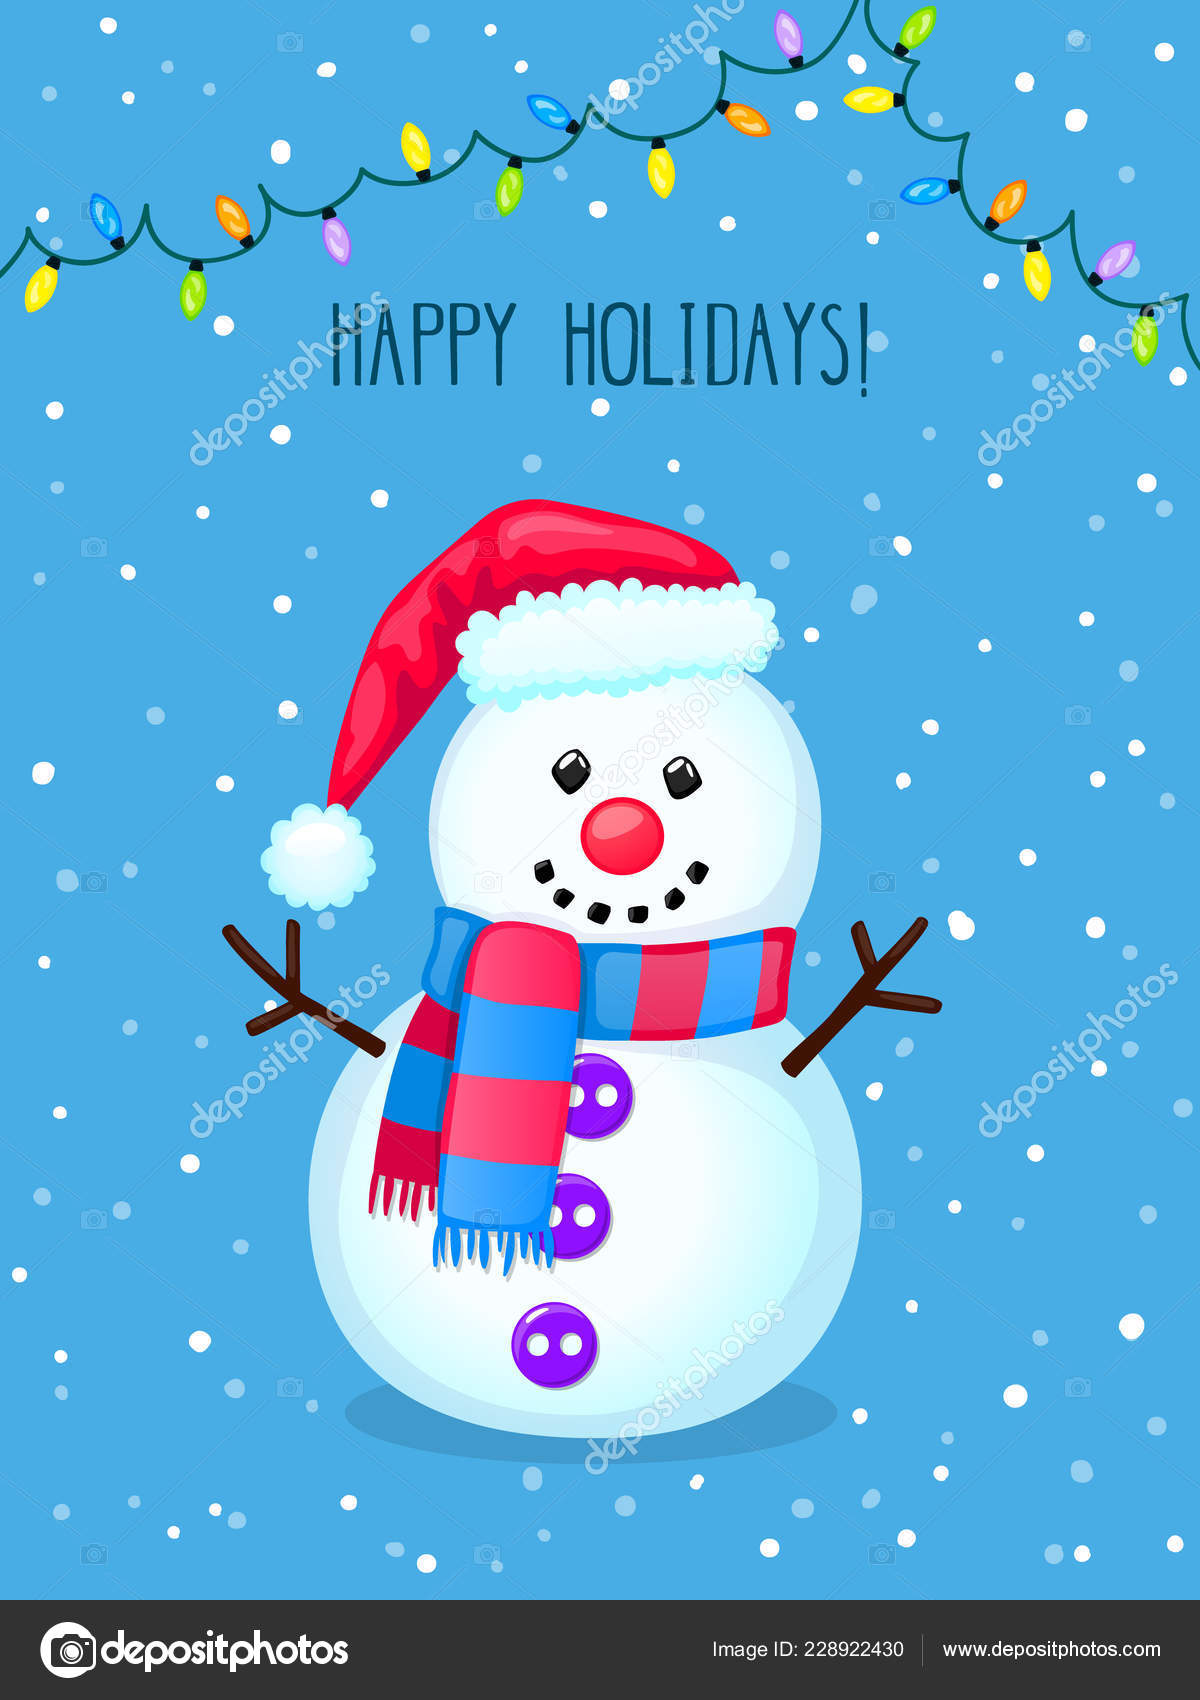 Christmas Greeting Card Cute Snowman Electric Lights Colorful